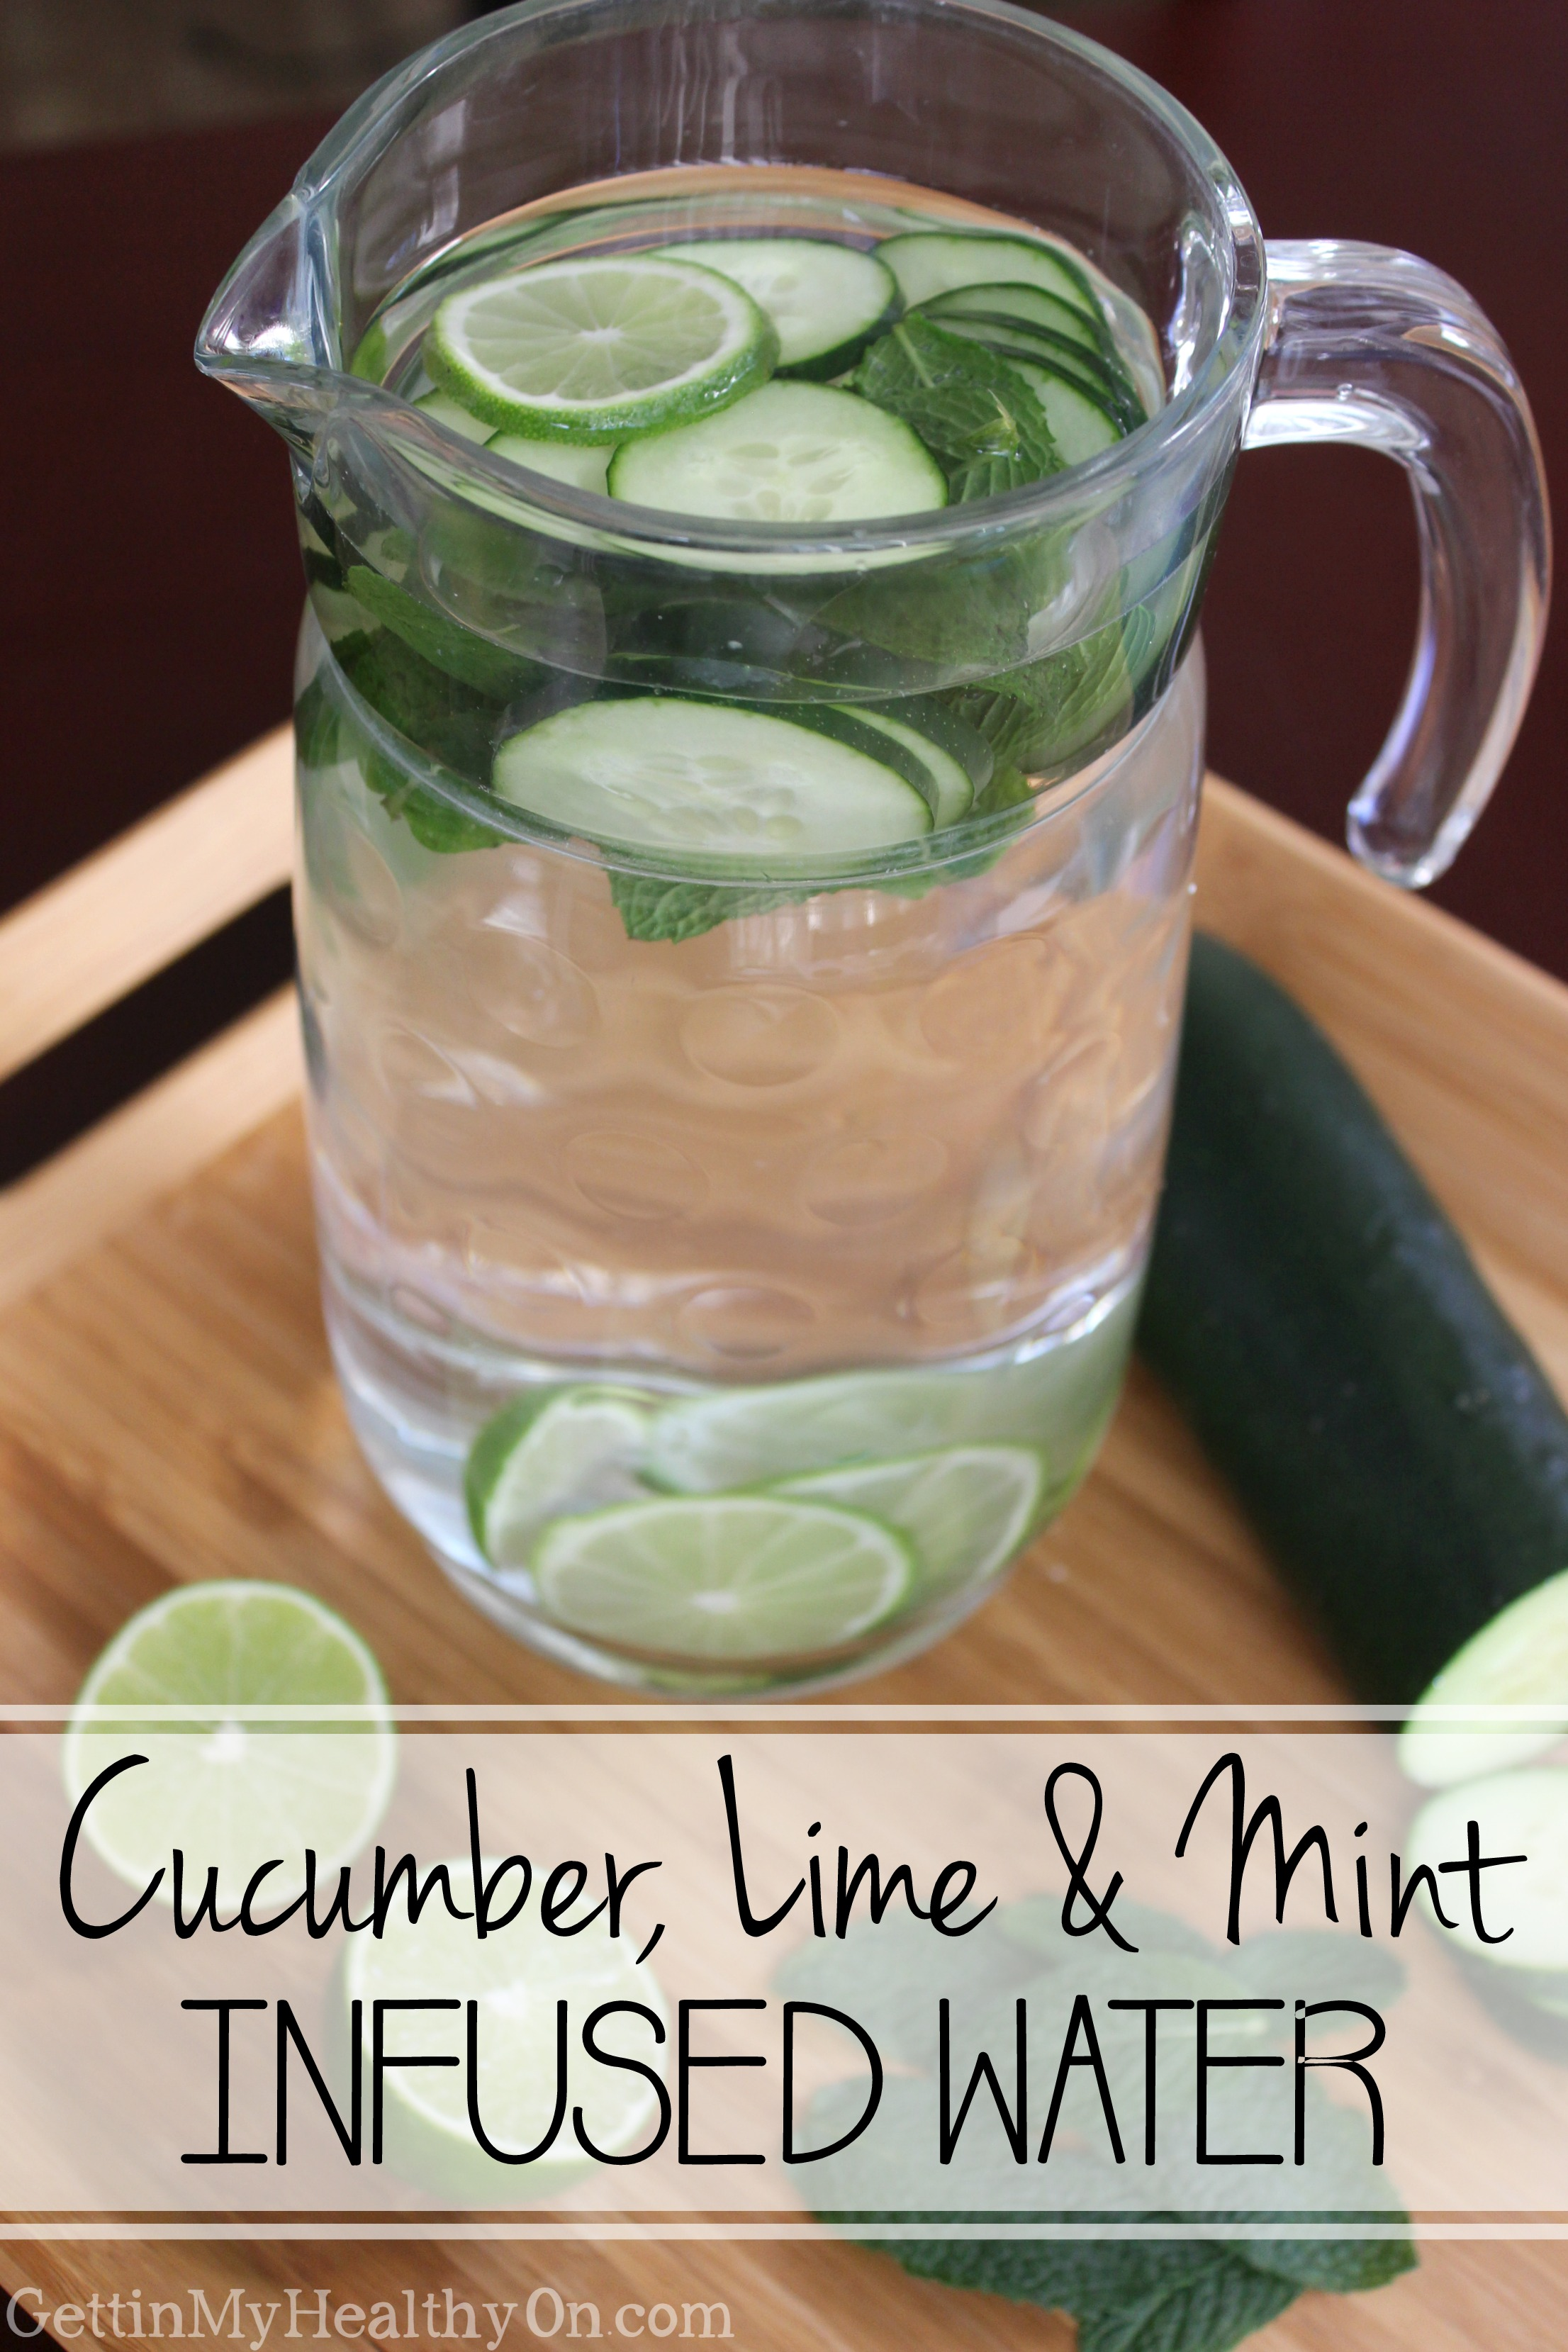 Cucumber, Lime & Mint Infused Water